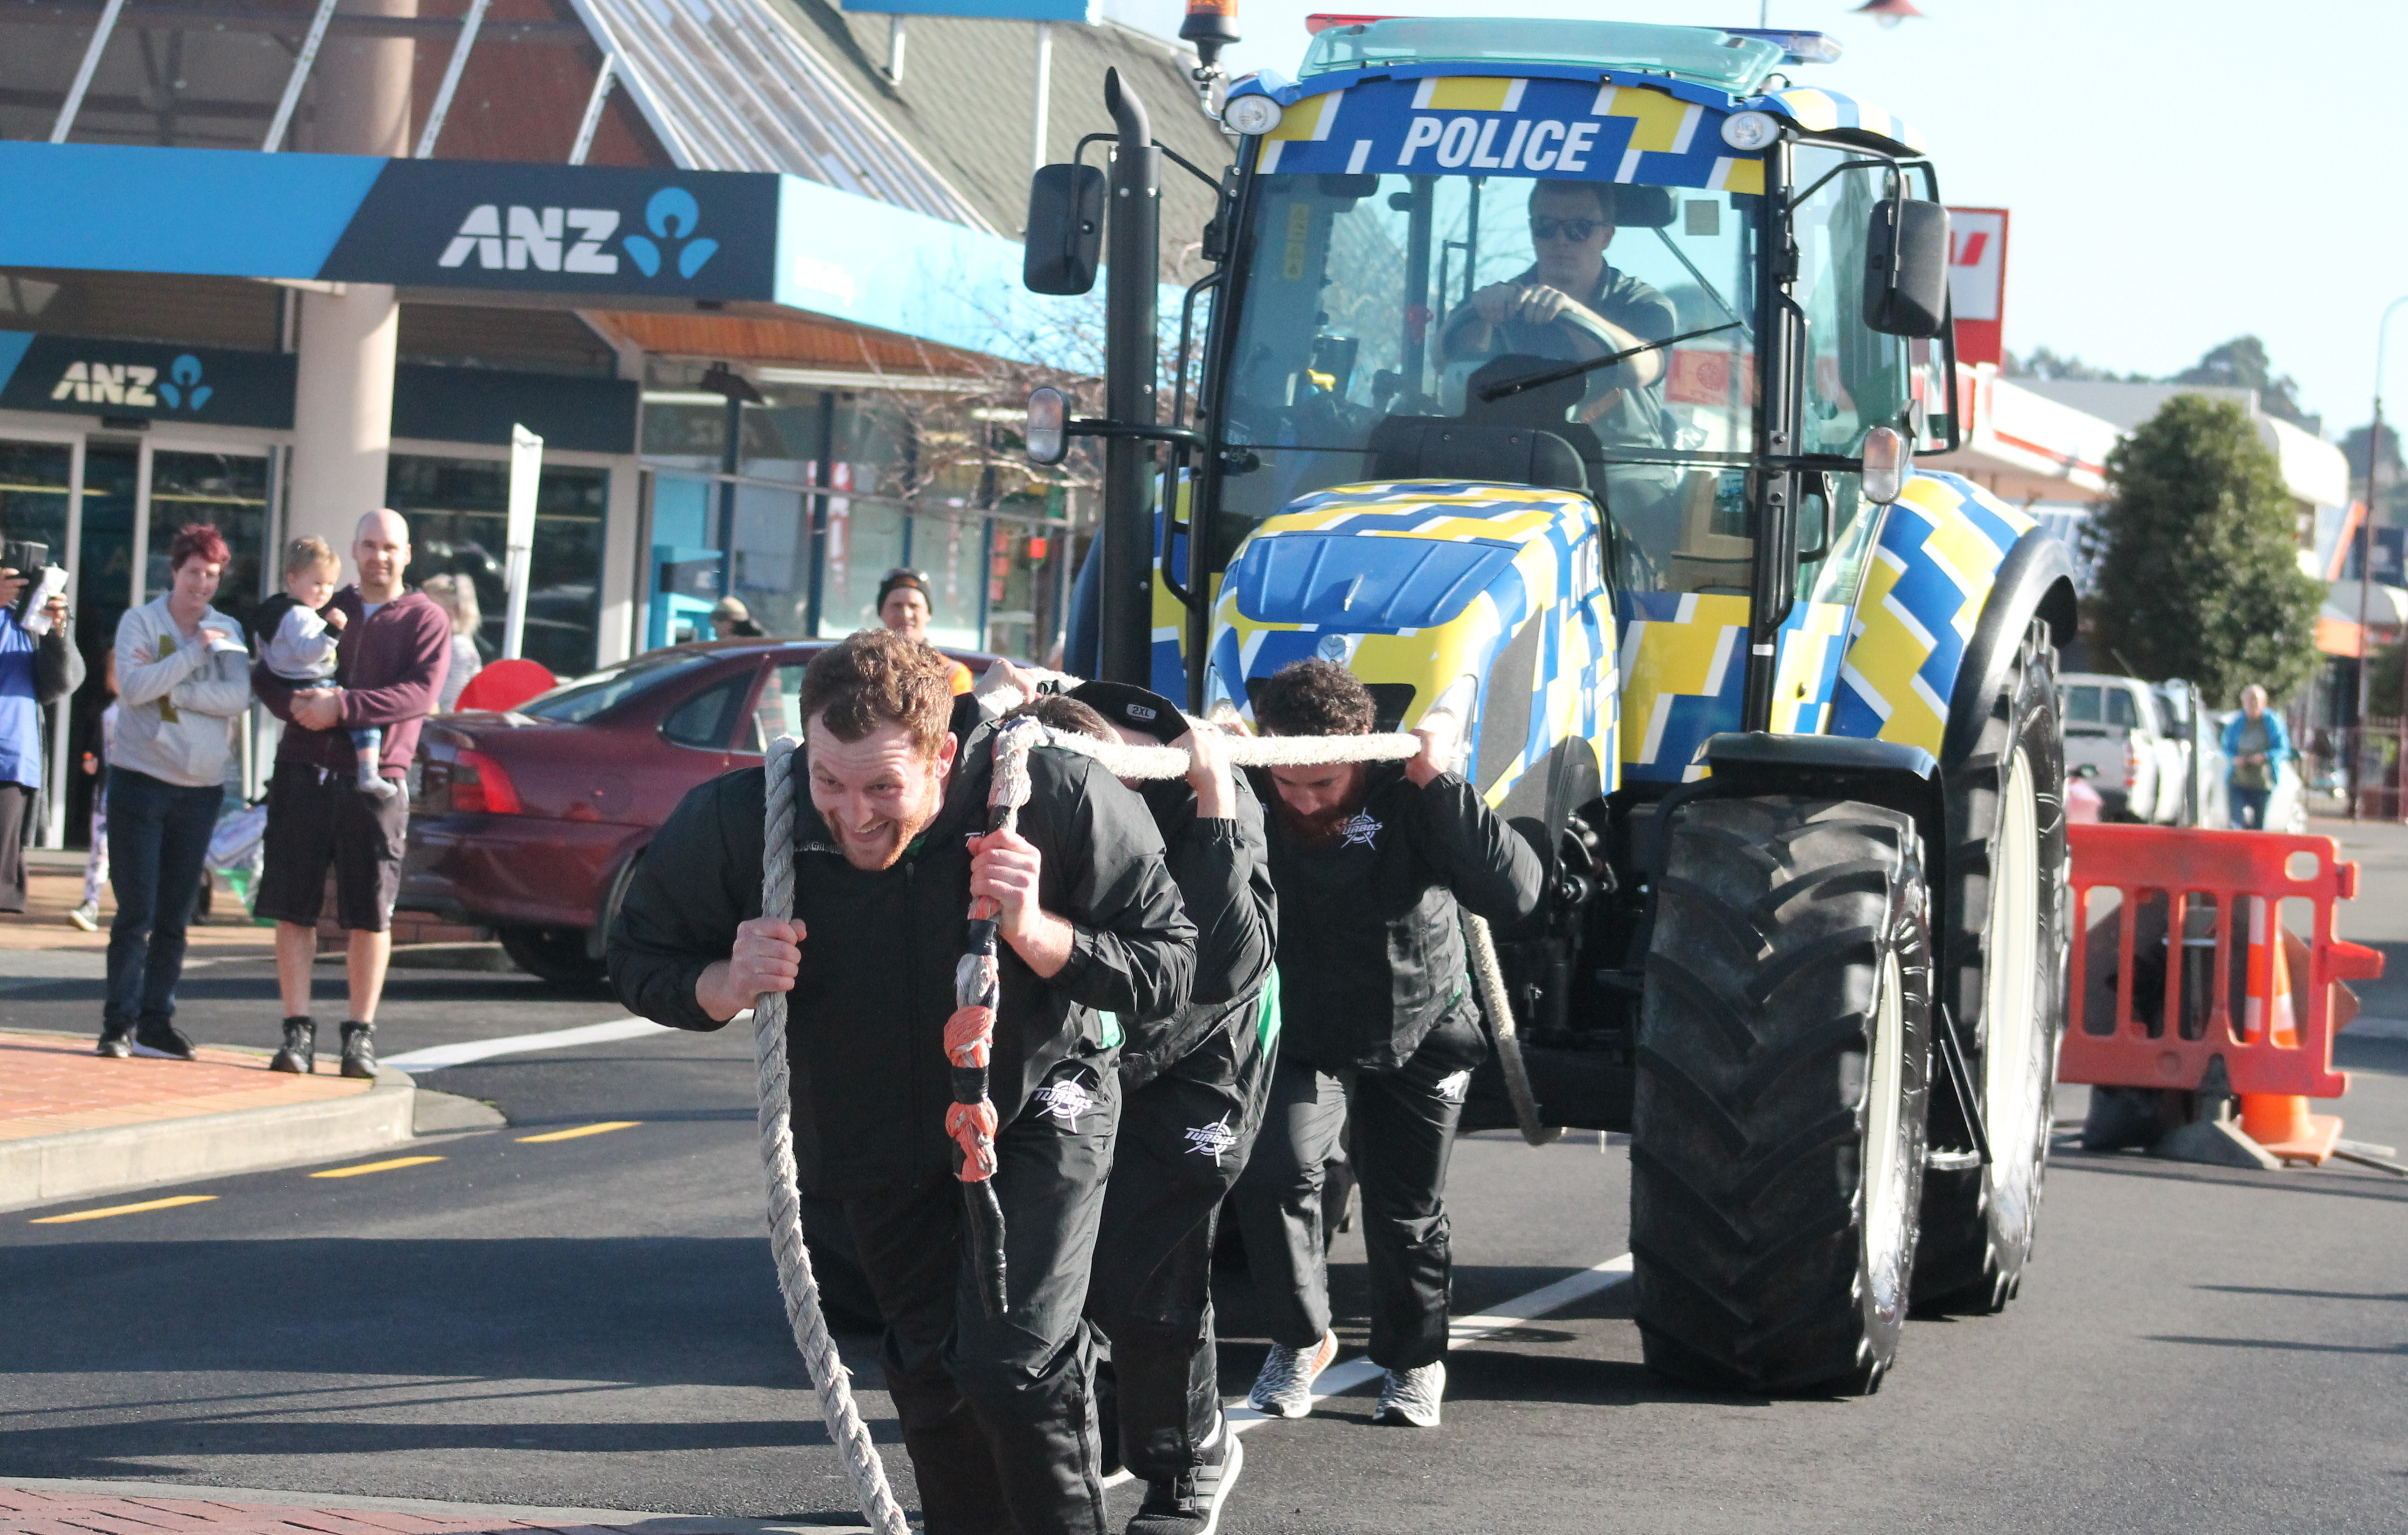 Turbos show their strength in tractor challenge